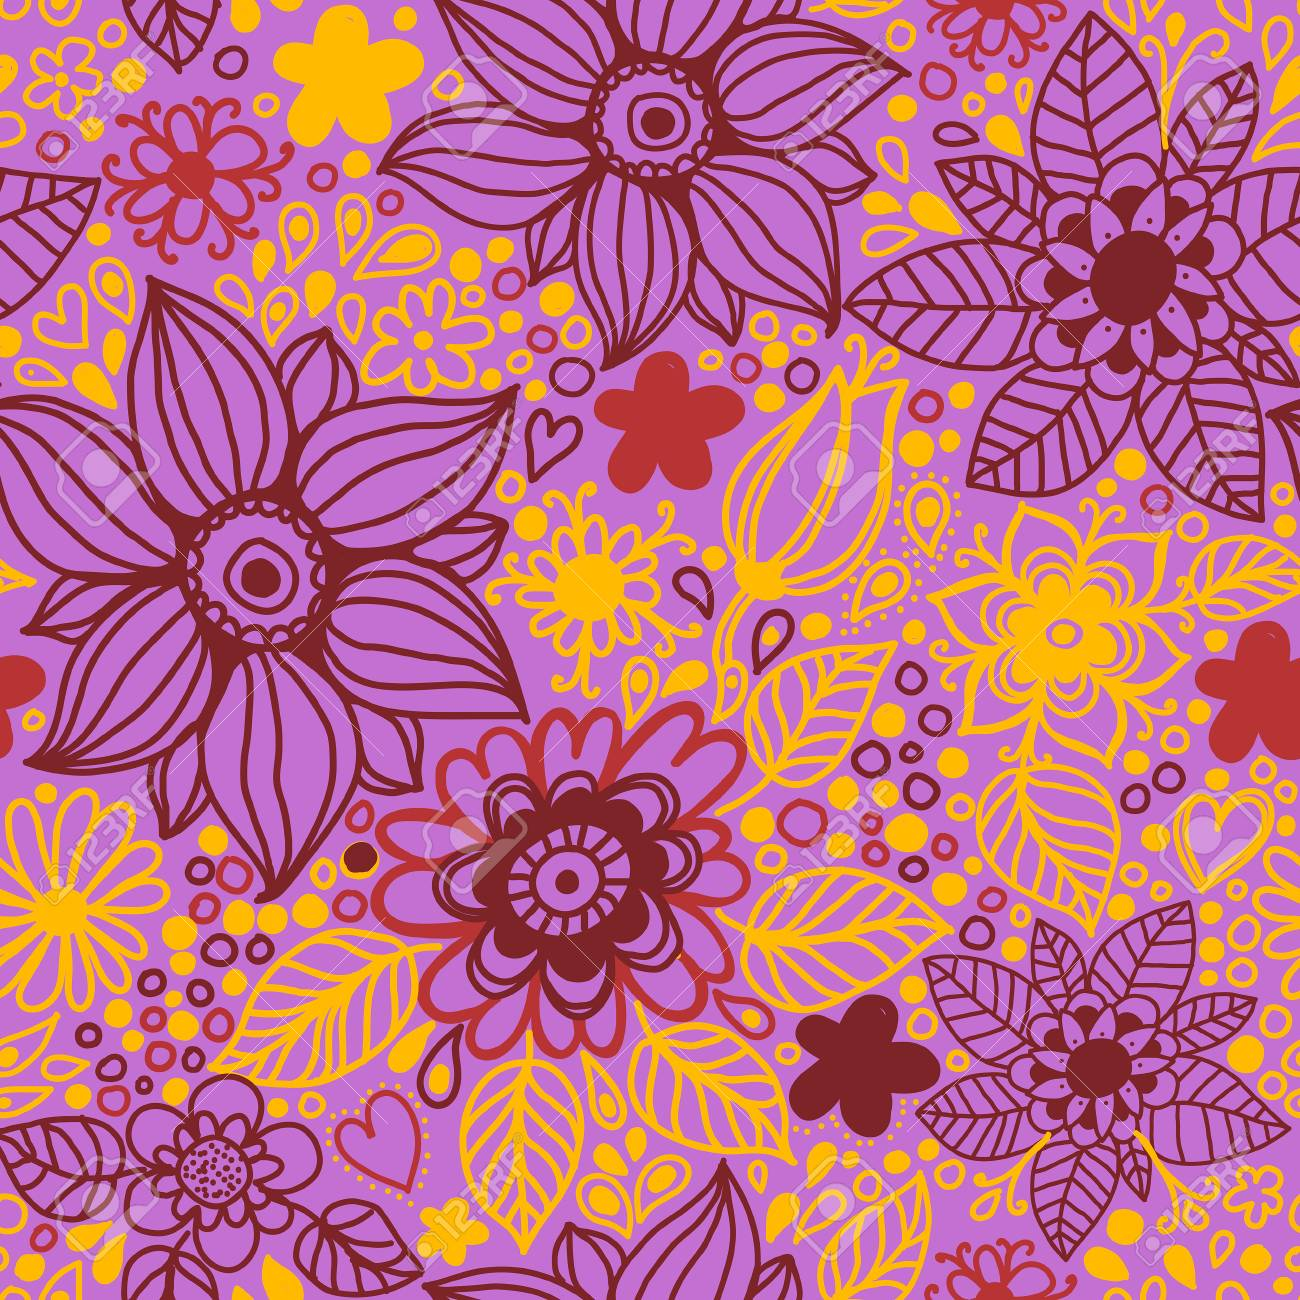 Floral Seamless PatternSeamless Texture With FlowersSeamless Pattern Can Be Used For Wallpaper